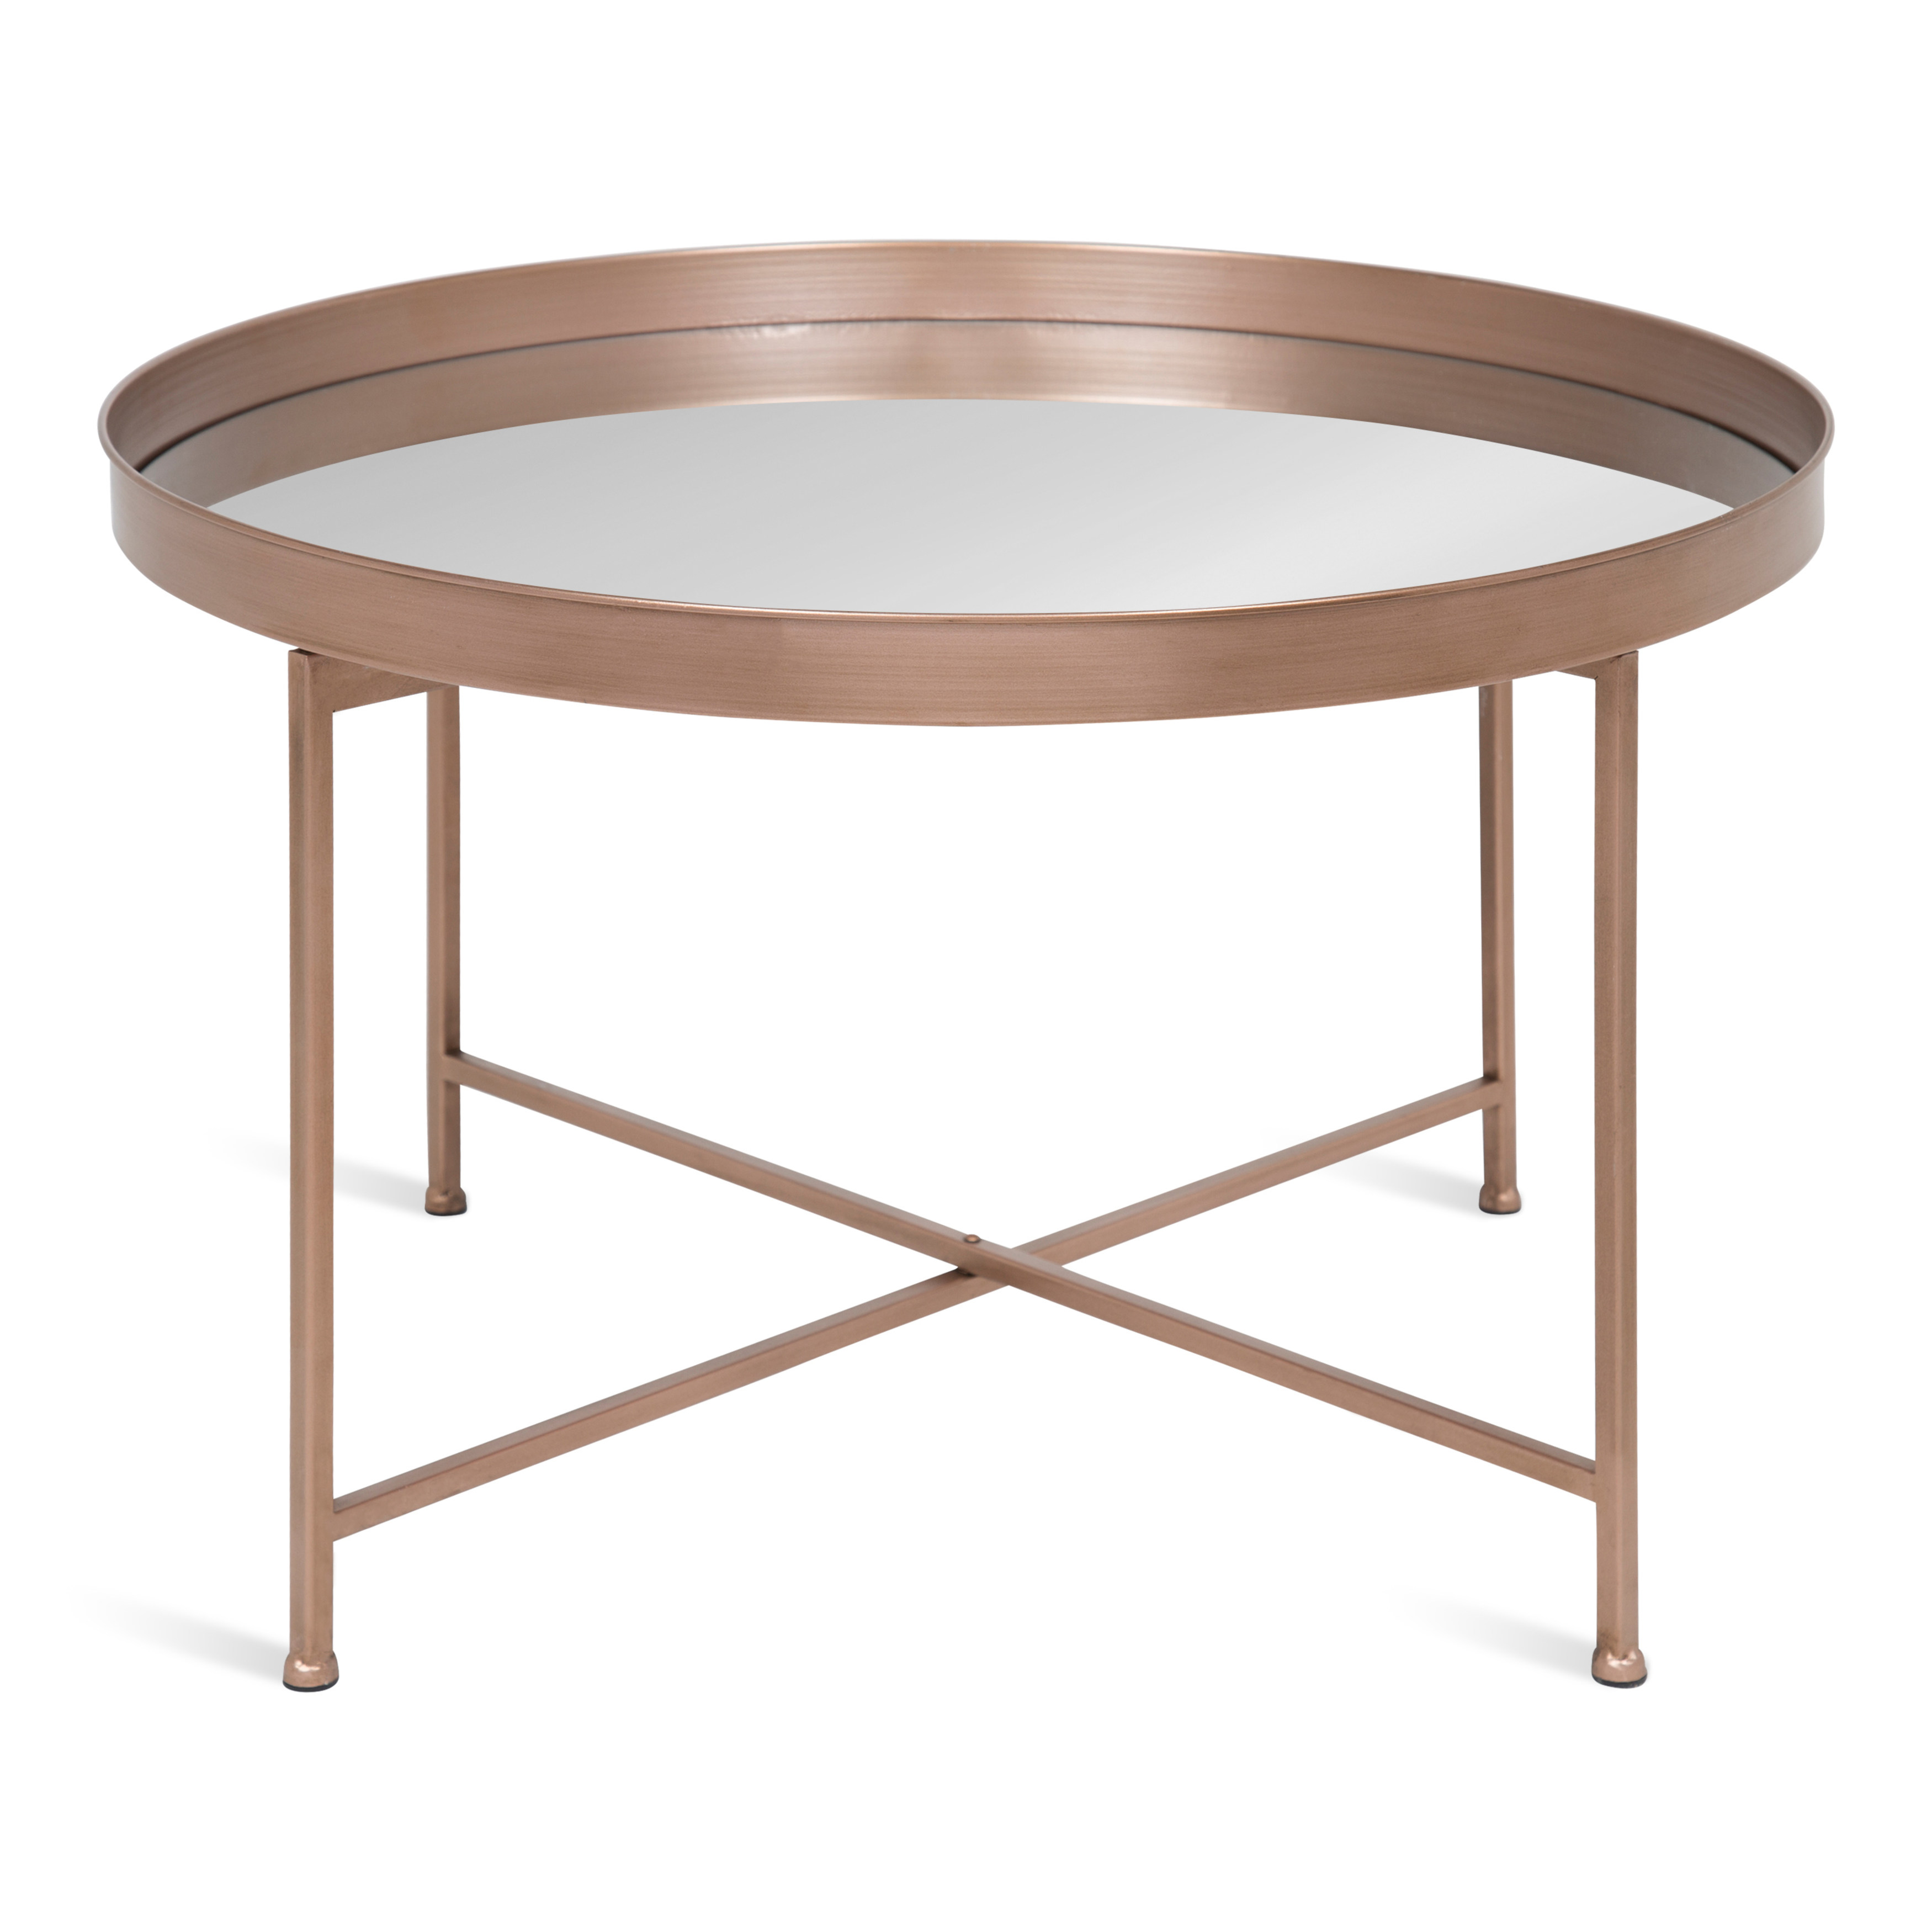 Kate And Laurel Celia Round Metal Foldable Coffee Table With Mirrored Tray Top Rose Gold Walmart Com Walmart Com